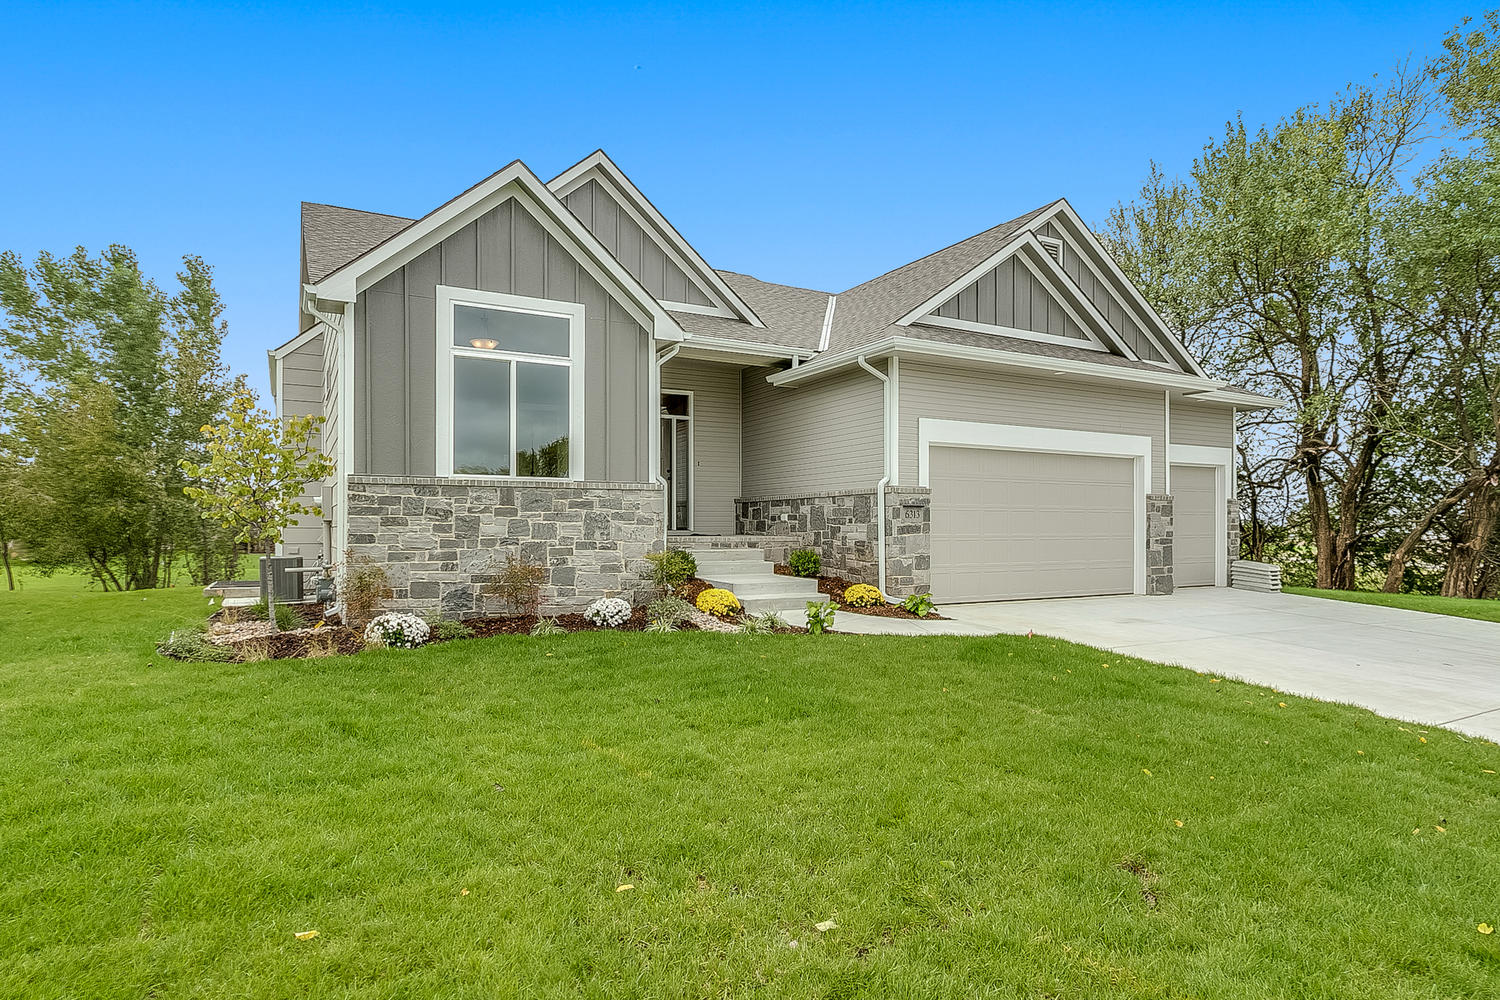 For sale 6313 driftwood st wichita ks 67205 557944 jrussell communities for Exterior construction wichita ks